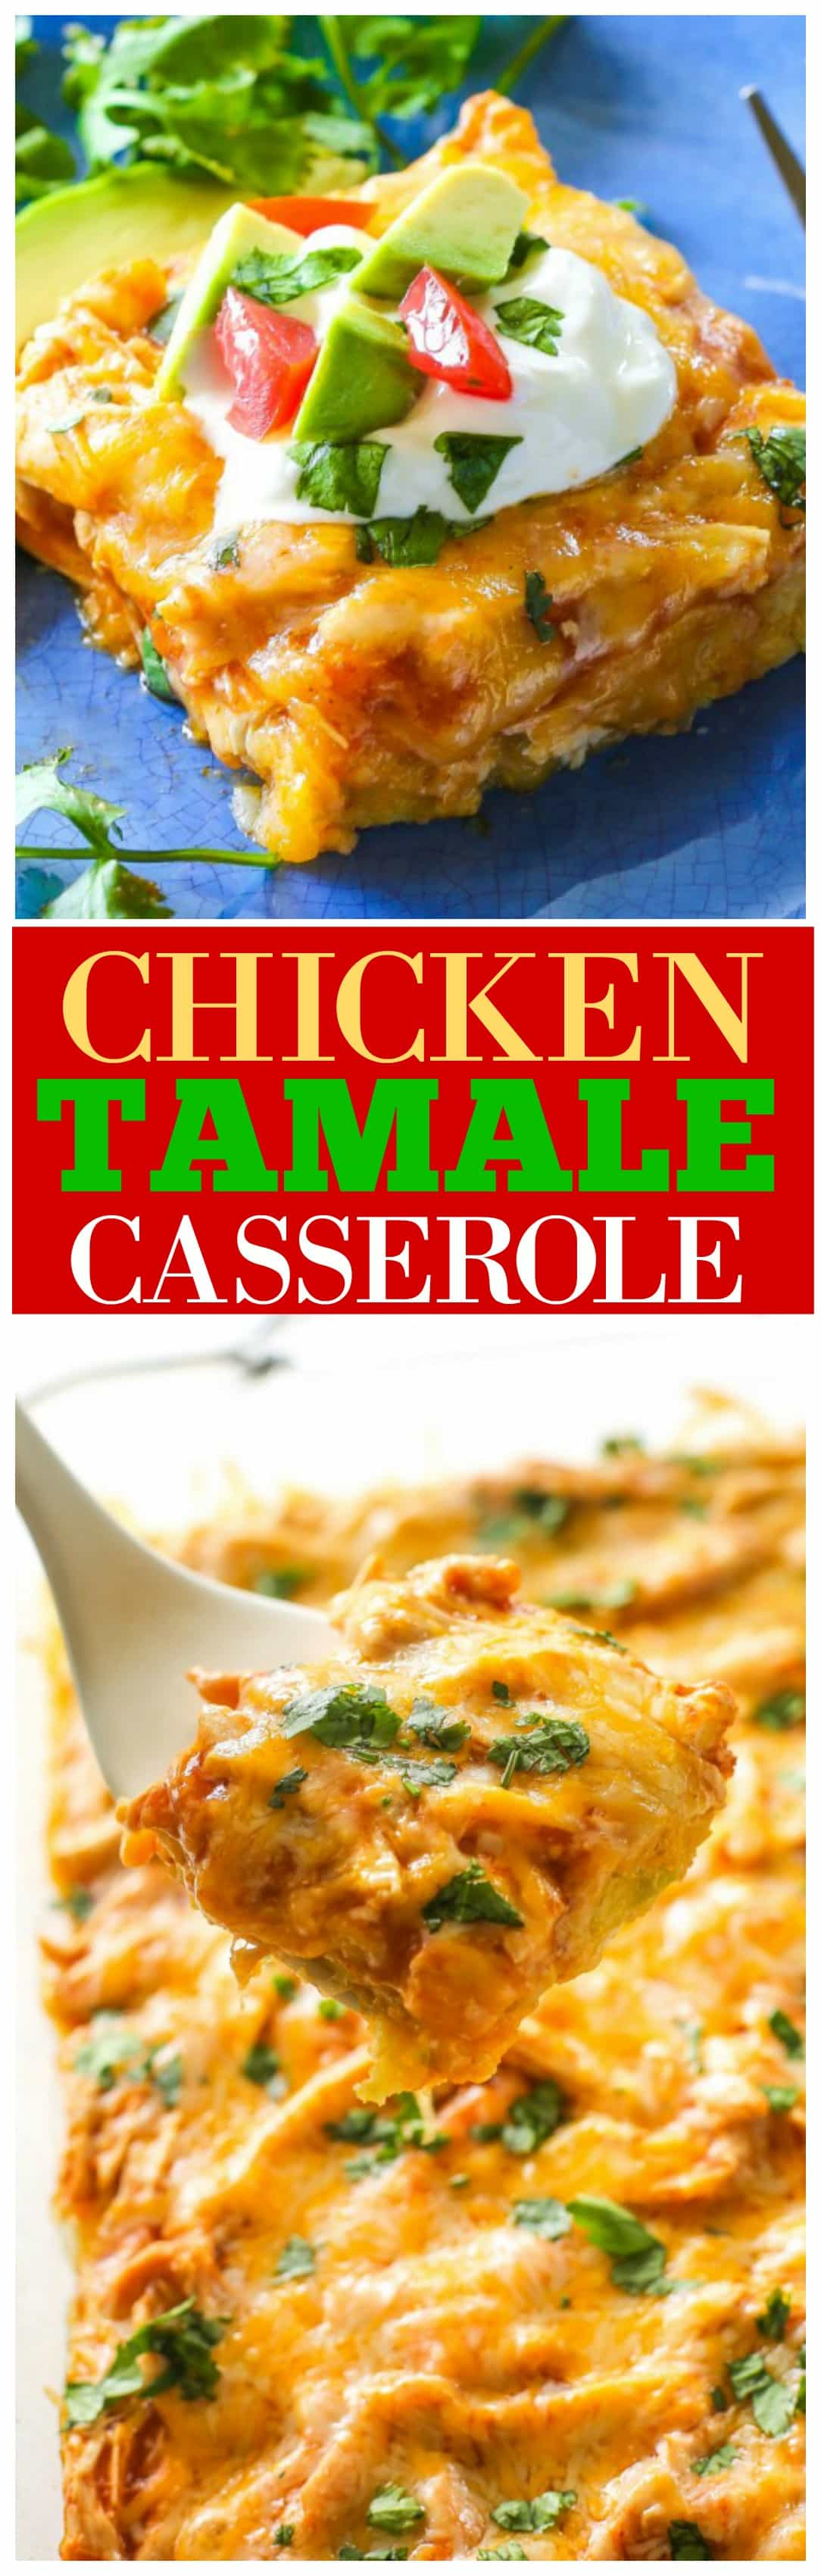 Chicken Tamale Casserole - a sweet cornbread crust topped with enchilada sauce and chicken. This is a crowd pleaser! #chicken #tamale #casserole #recipe #dinner